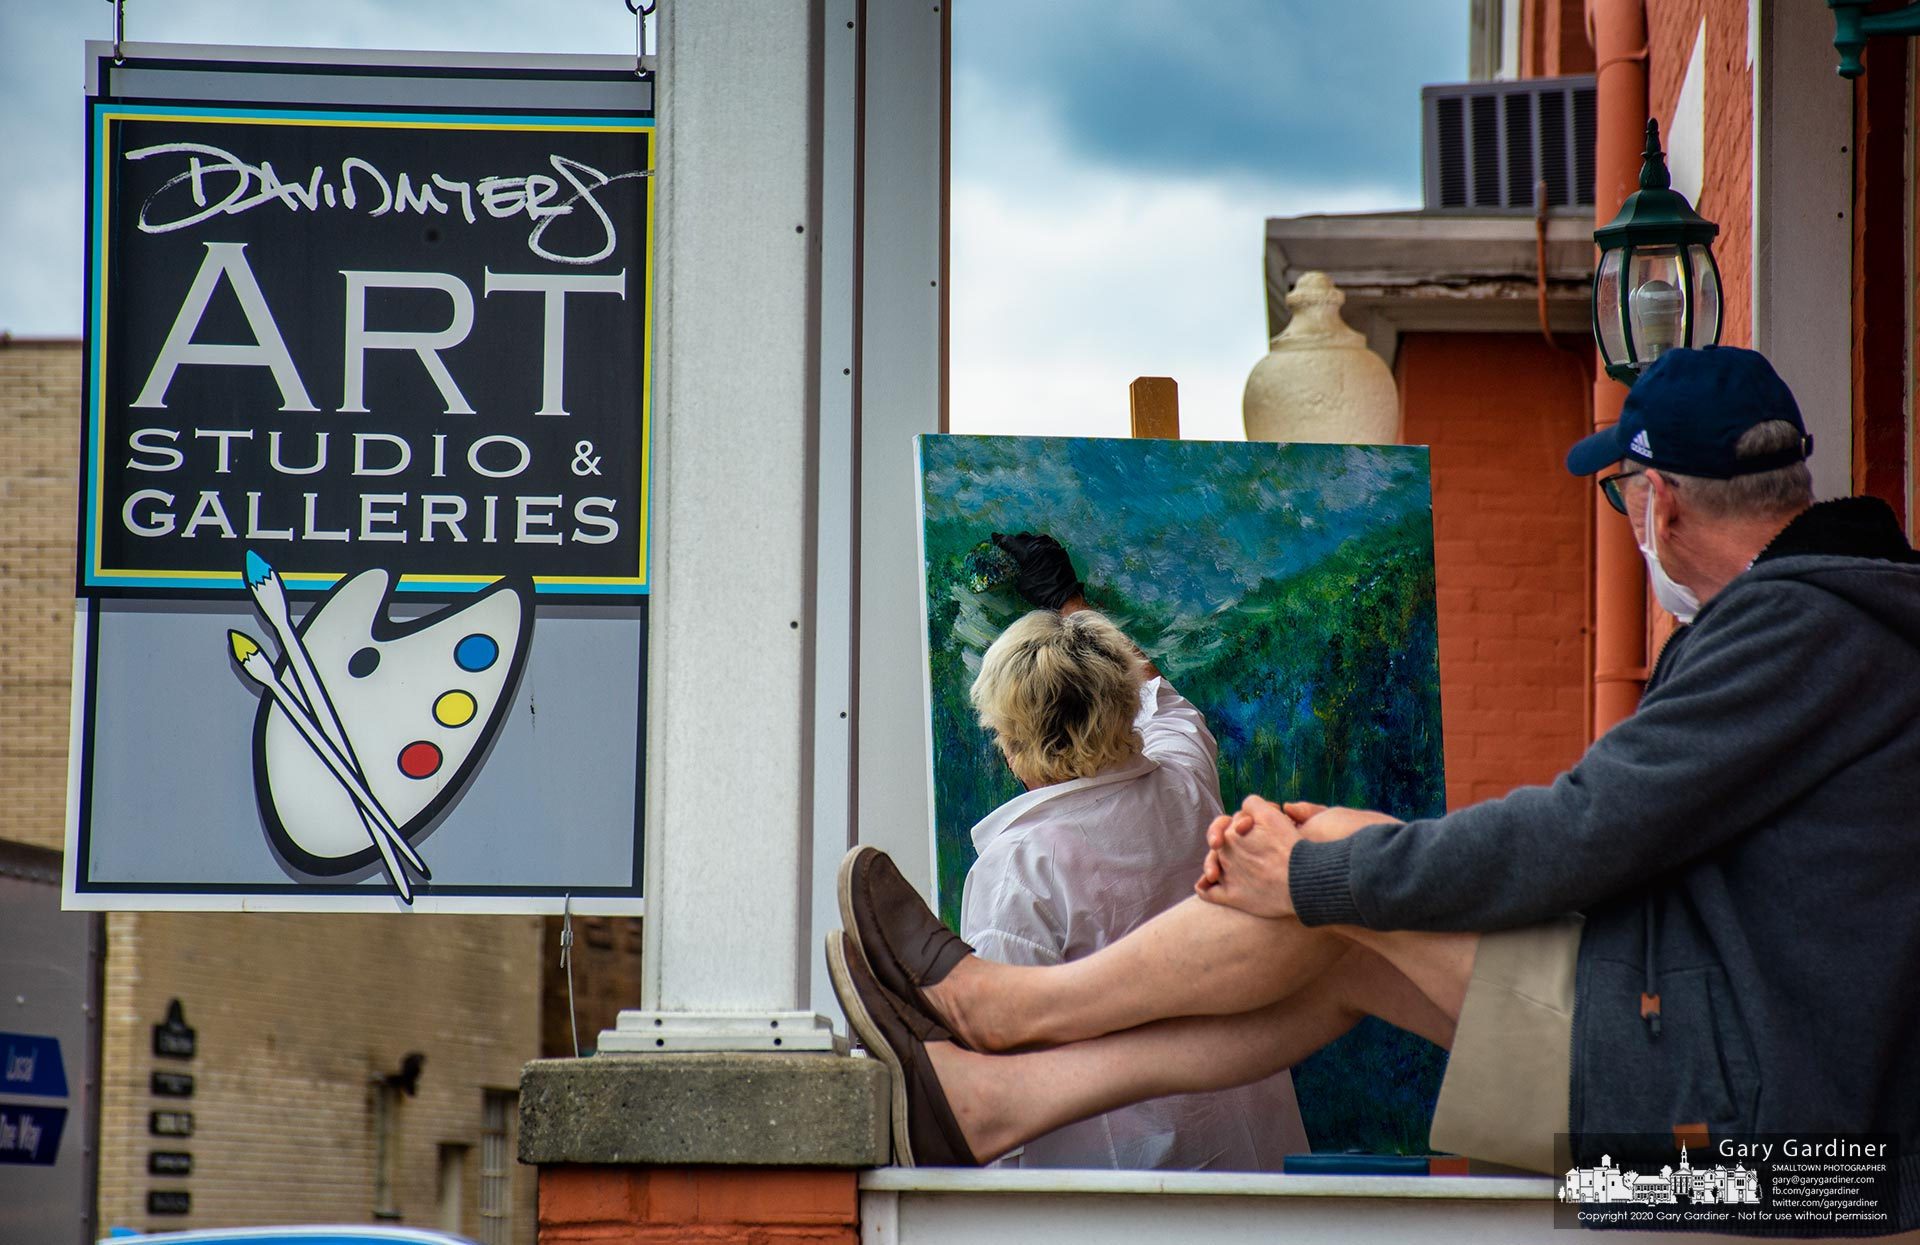 Westerville artist David Myers rests on the railing of the portico of his gallery as one of his students takes advantage of the weather to complete her work outdoors. My Final Photo for June 15, 2020